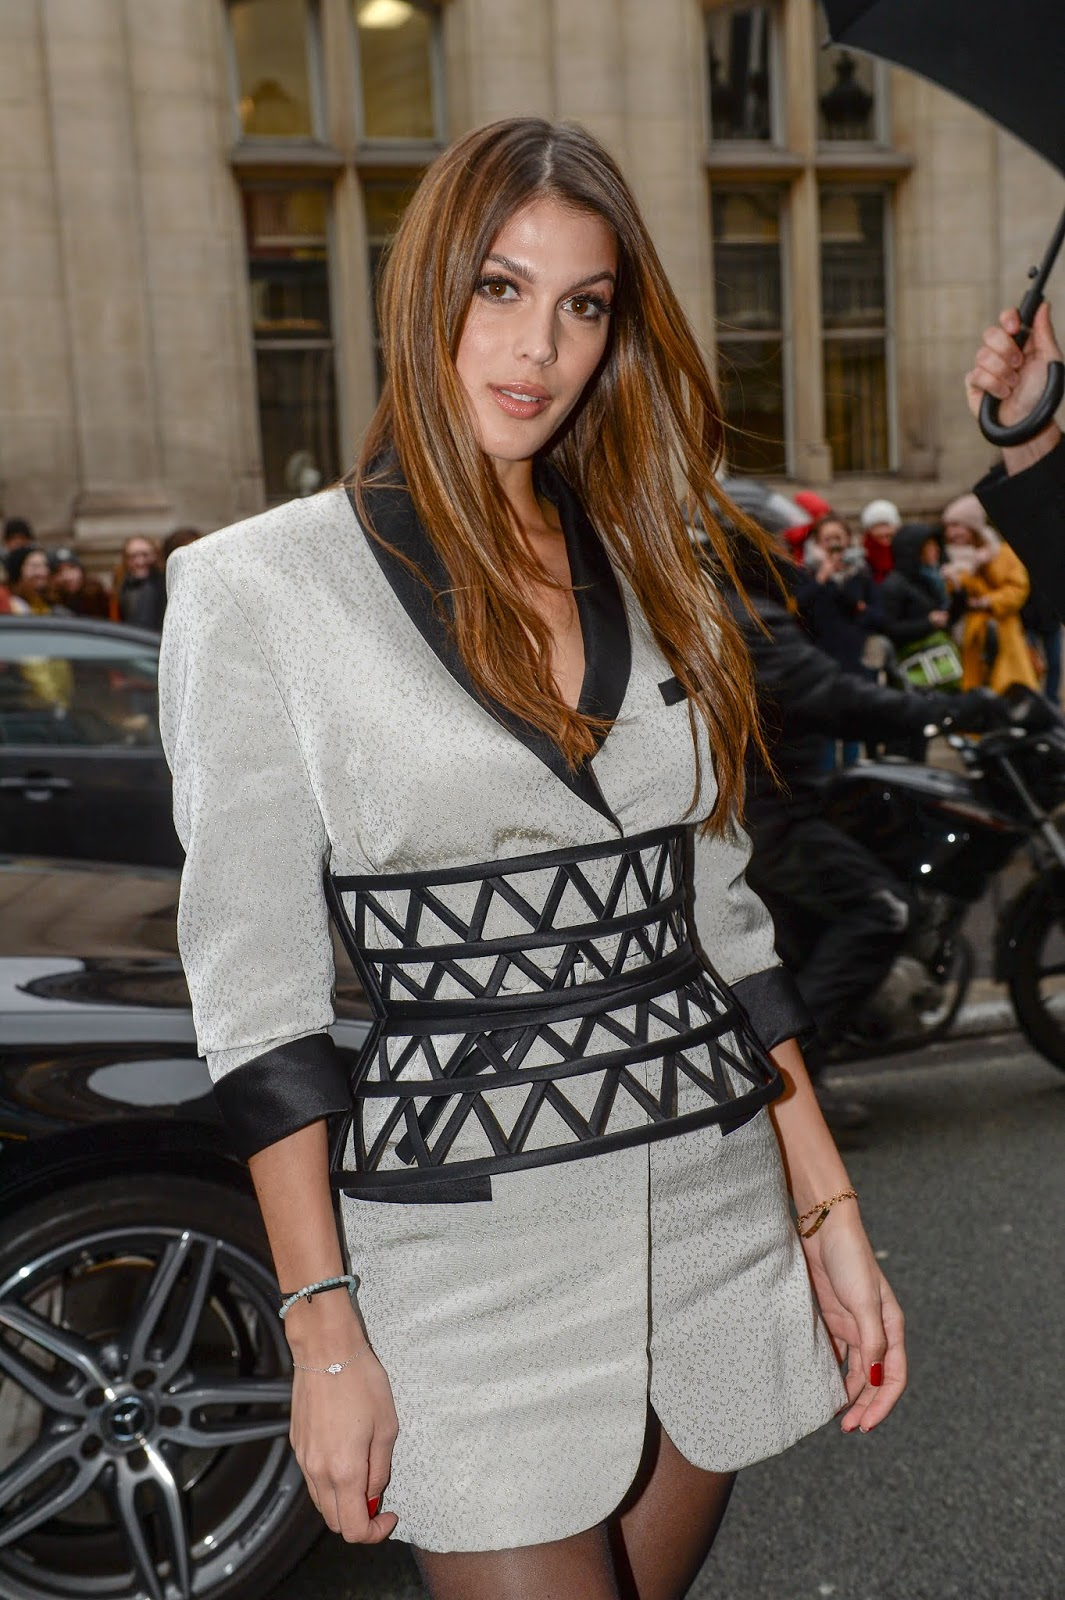 Iris Mittenaere attending the Jean-Paul Gaultier Haute Couture Spring-Summer 2019 show as part of Paris Fashion Week in Paris, 01/23/2019